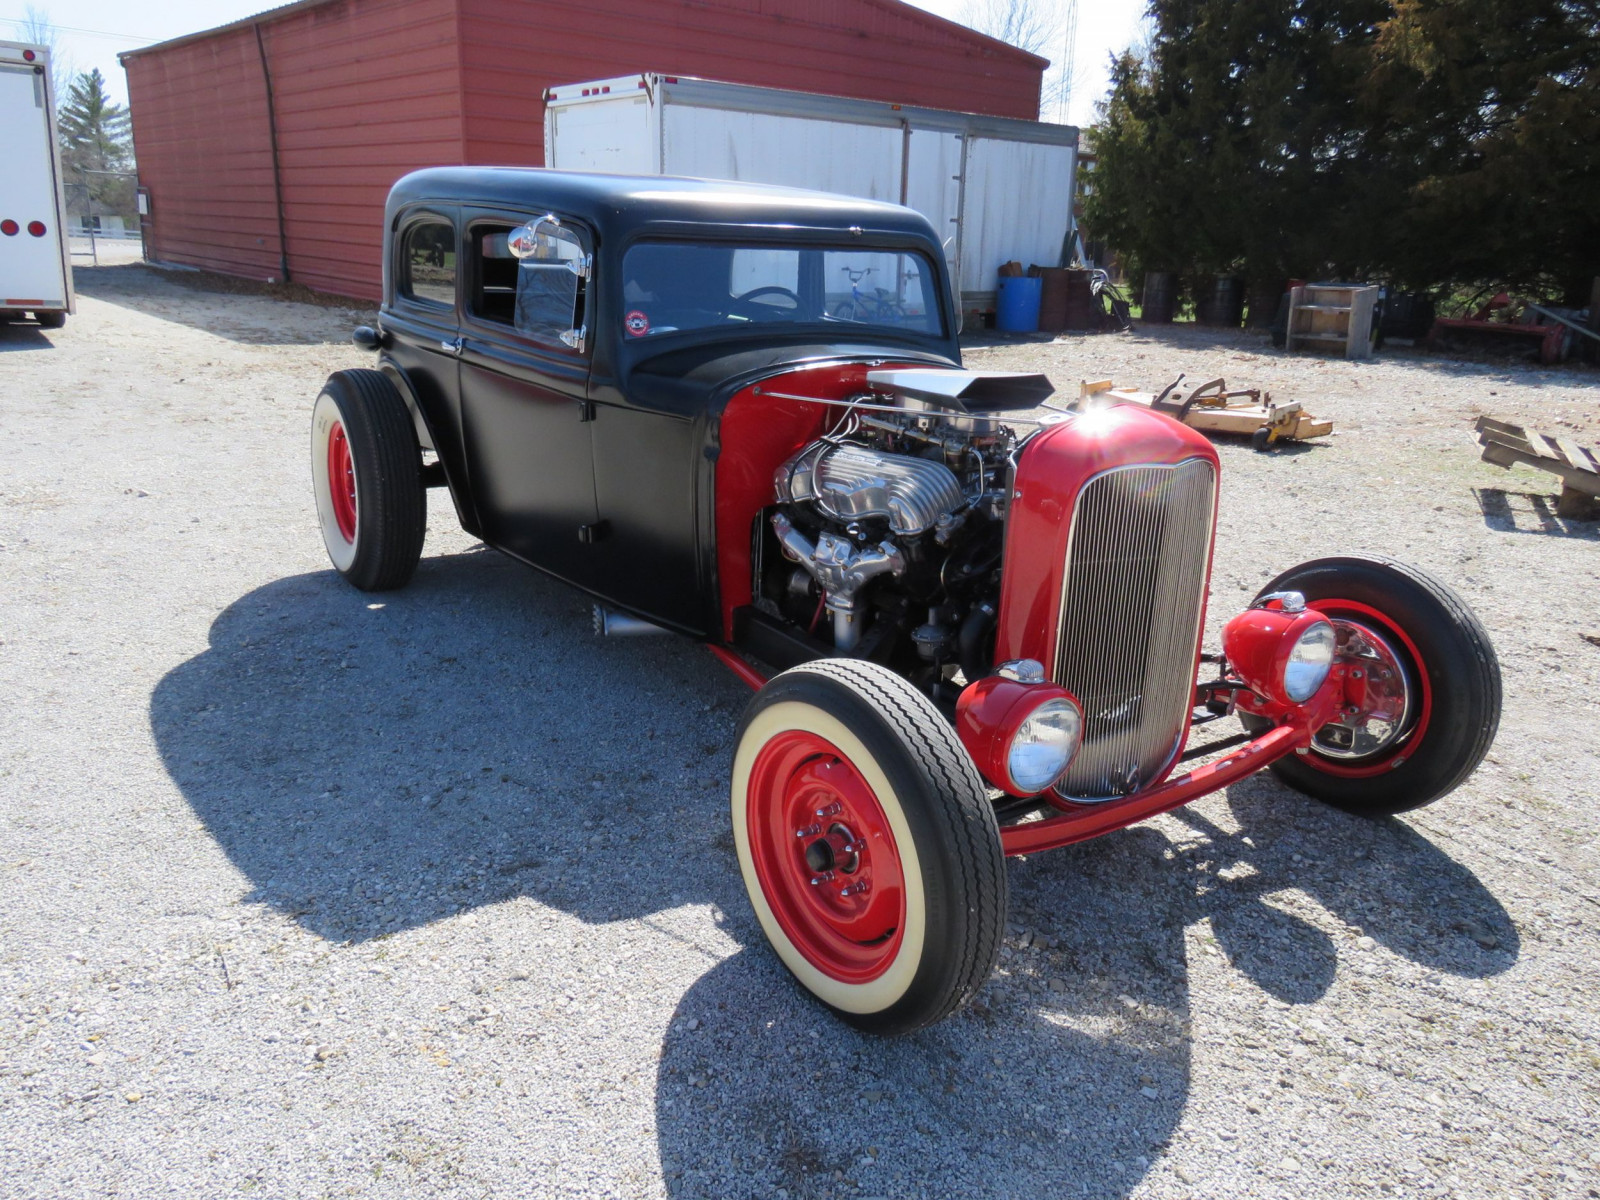 1929 Ford 23dr Sedan Custom Hot Rod - Image 3